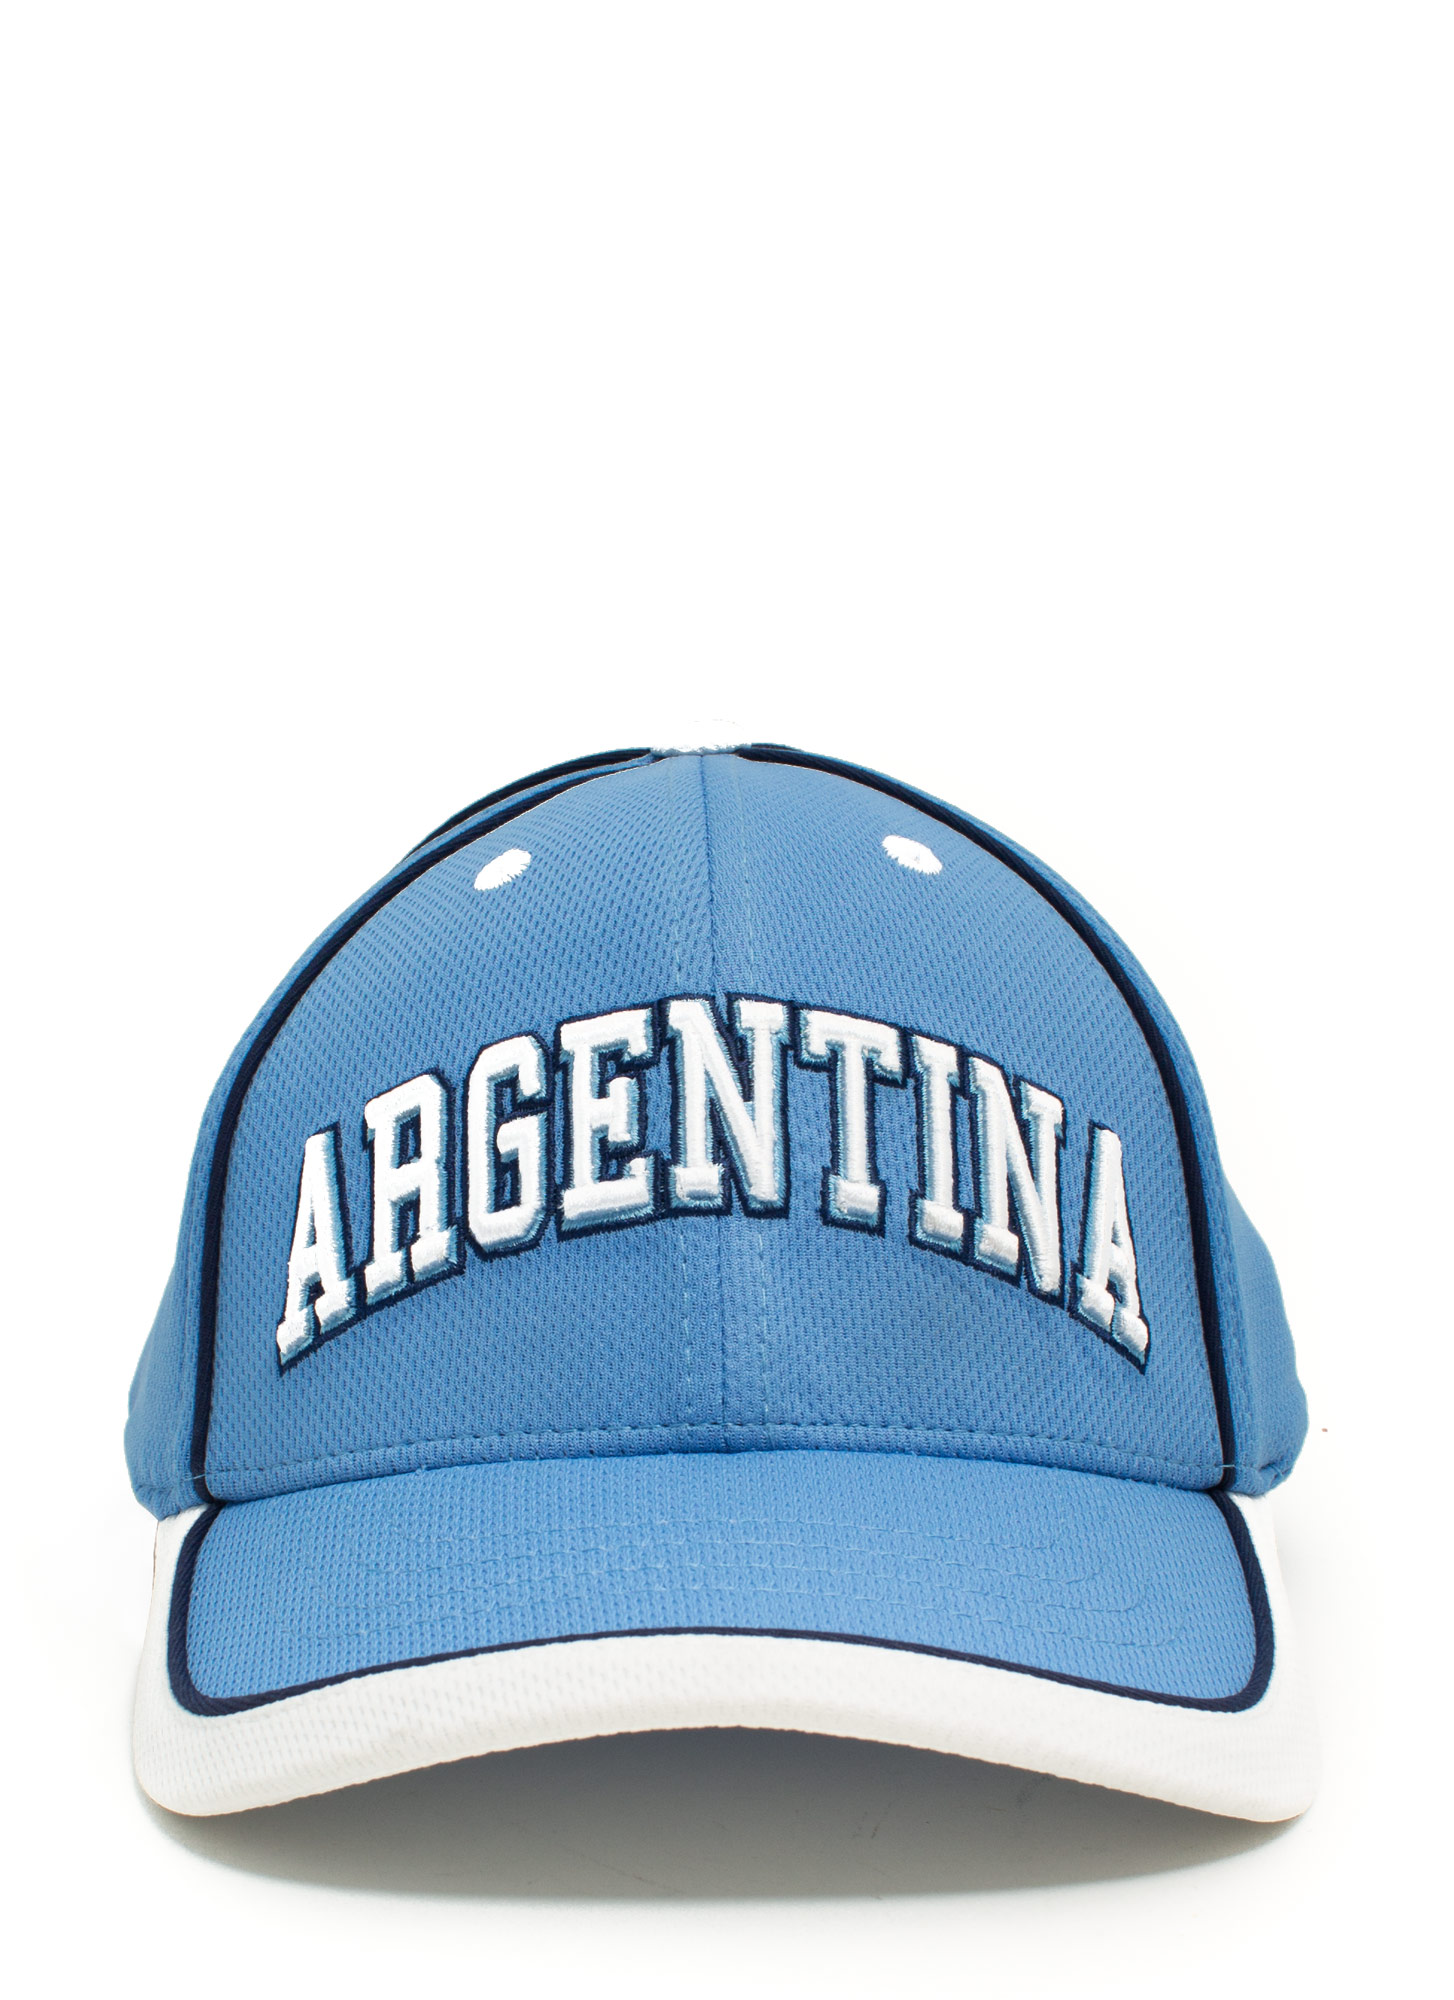 International Country Snapback Hat ARGENTINA